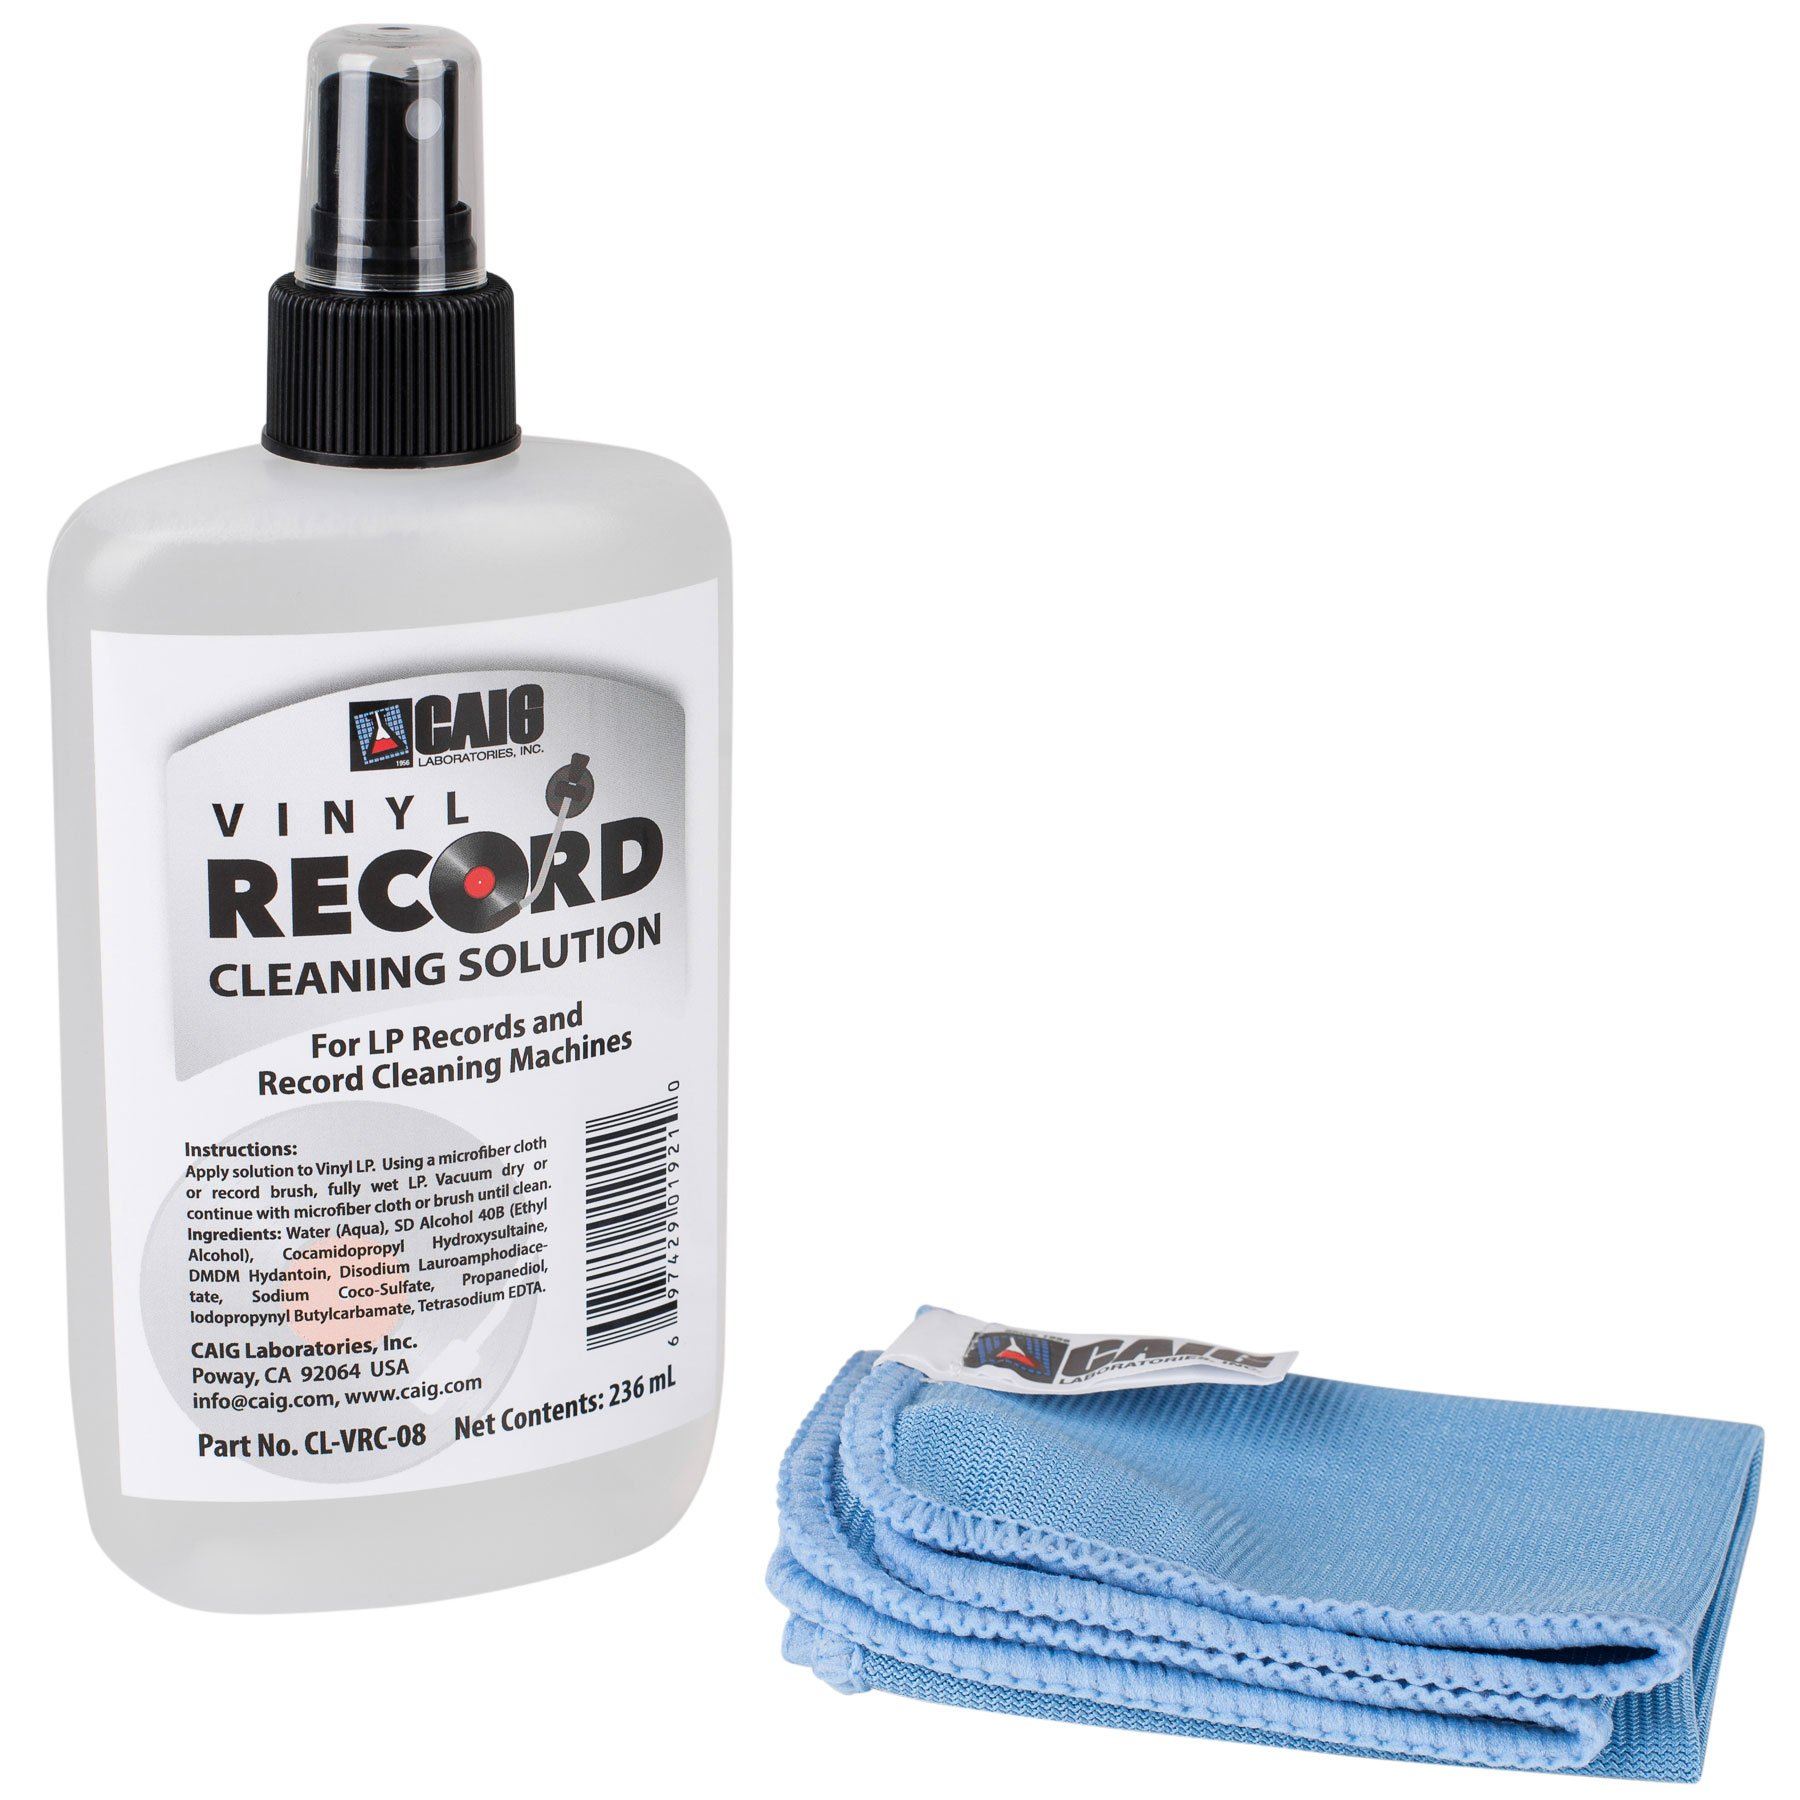 CAIG CL-VRC-08 Vinyl Record Cleaner with Microfiber Cloth 7.98 oz.